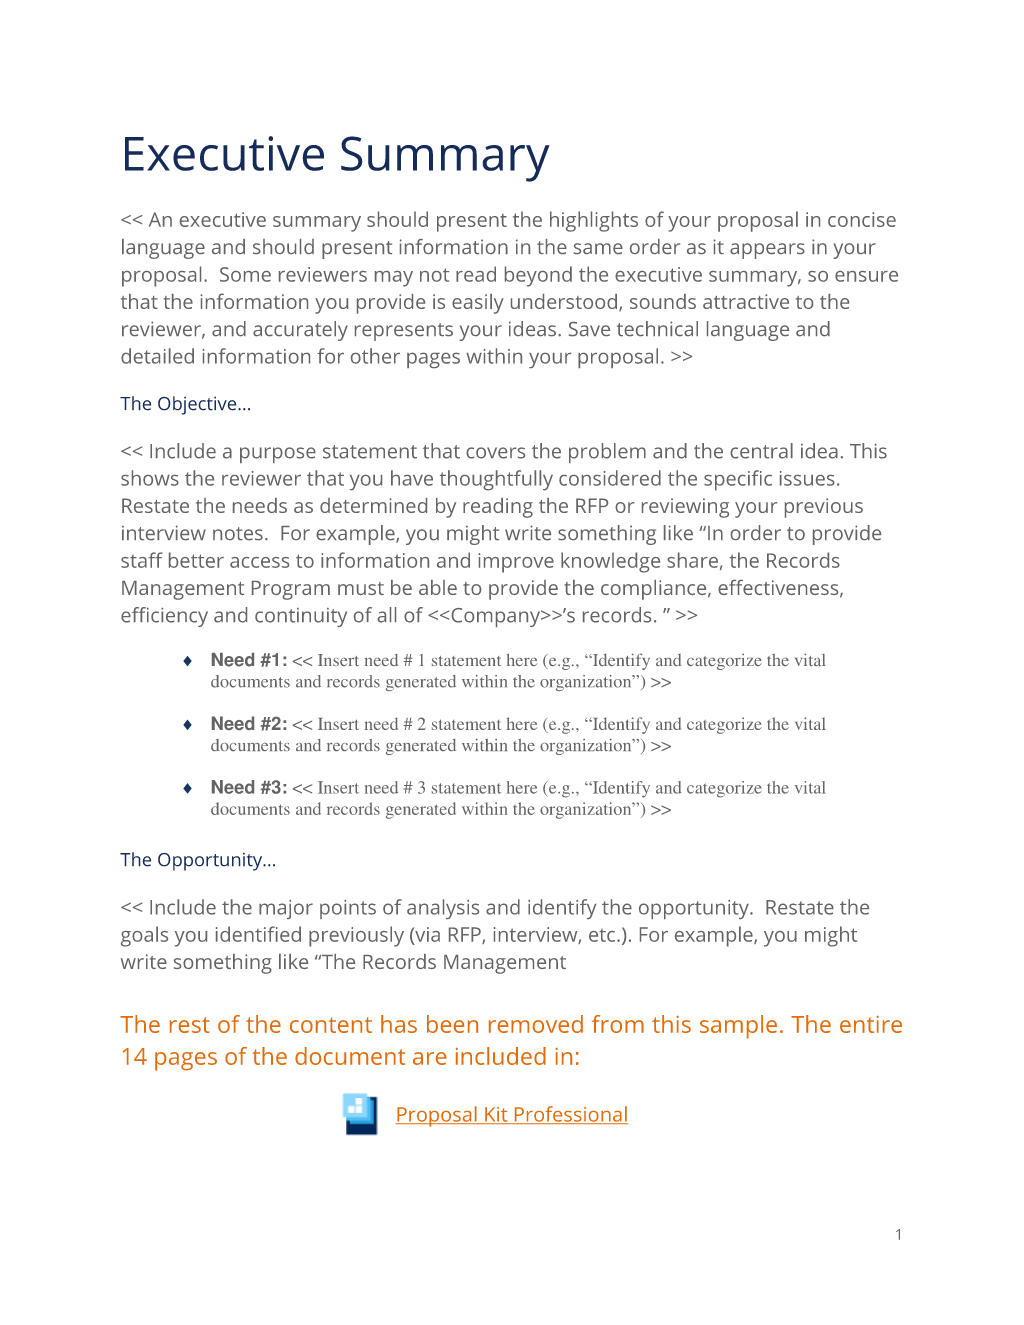 Executive Summary Sample For Proposal Slideshare In Business Analysis Proposal Template